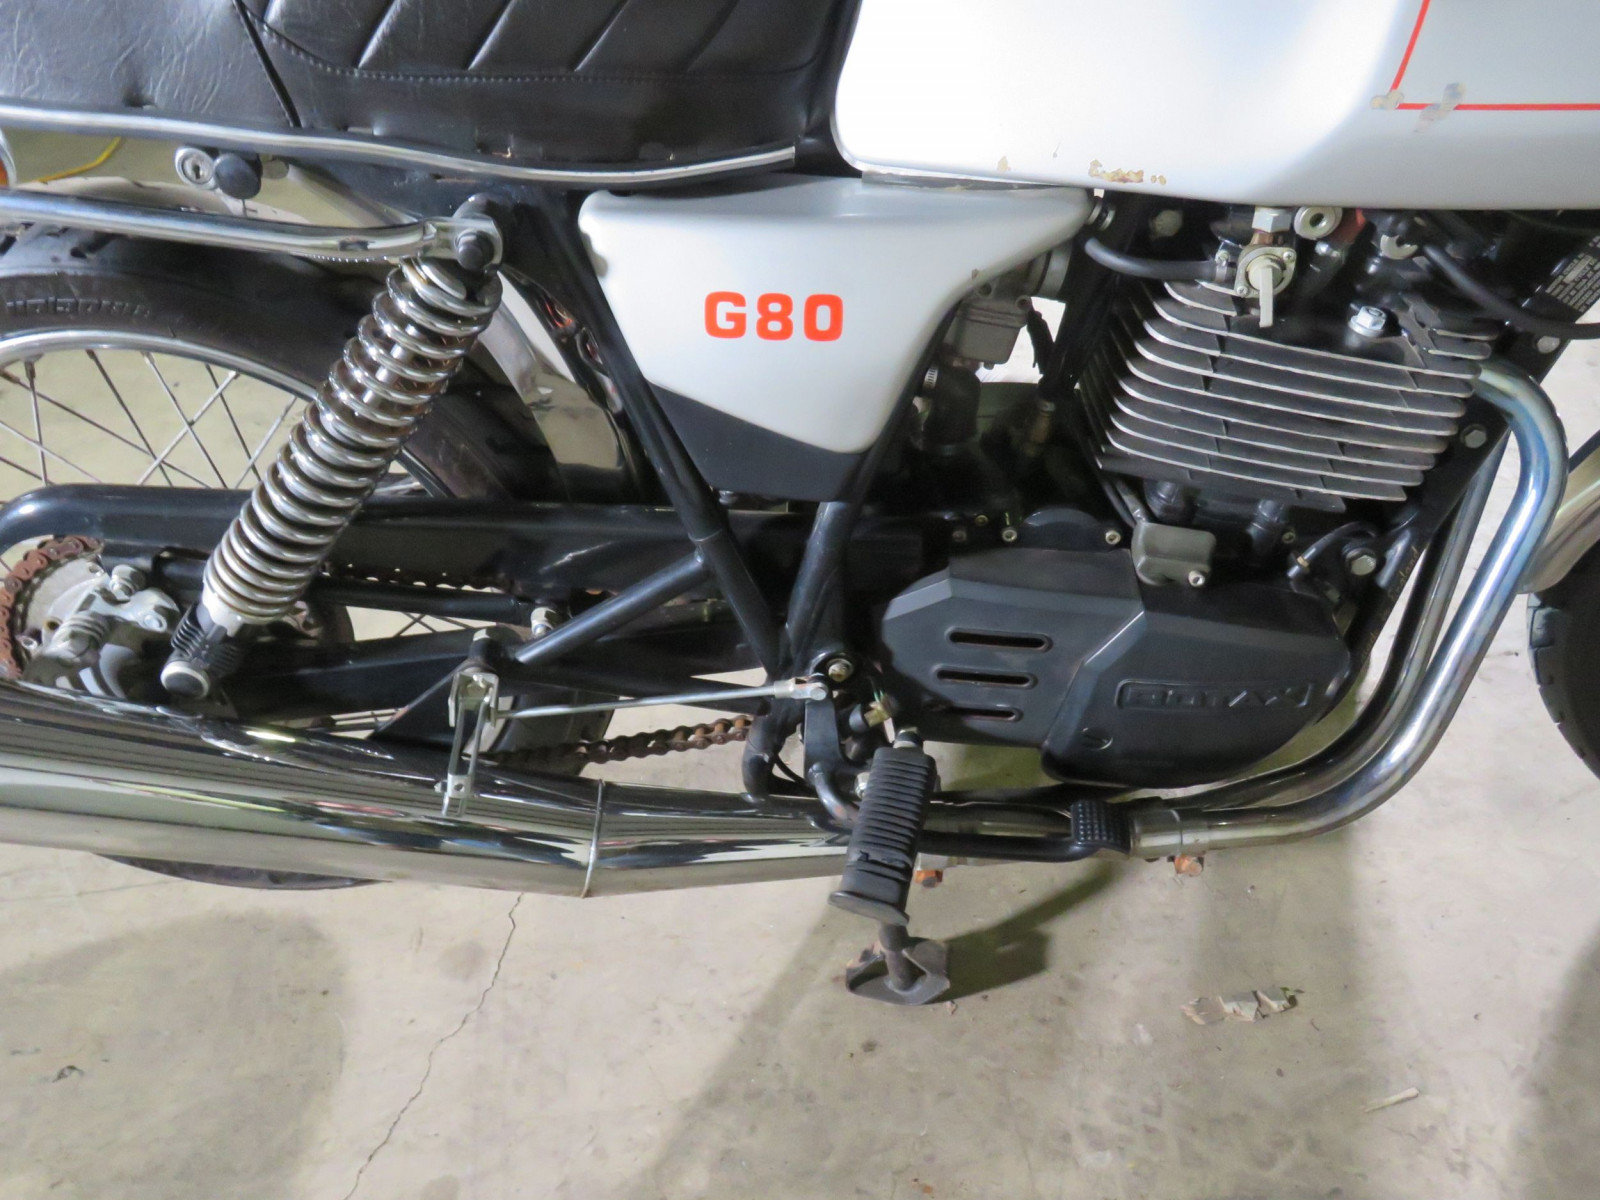 Rare 1988 Matchless G80 Rotax Power Motorcycle - Image 8